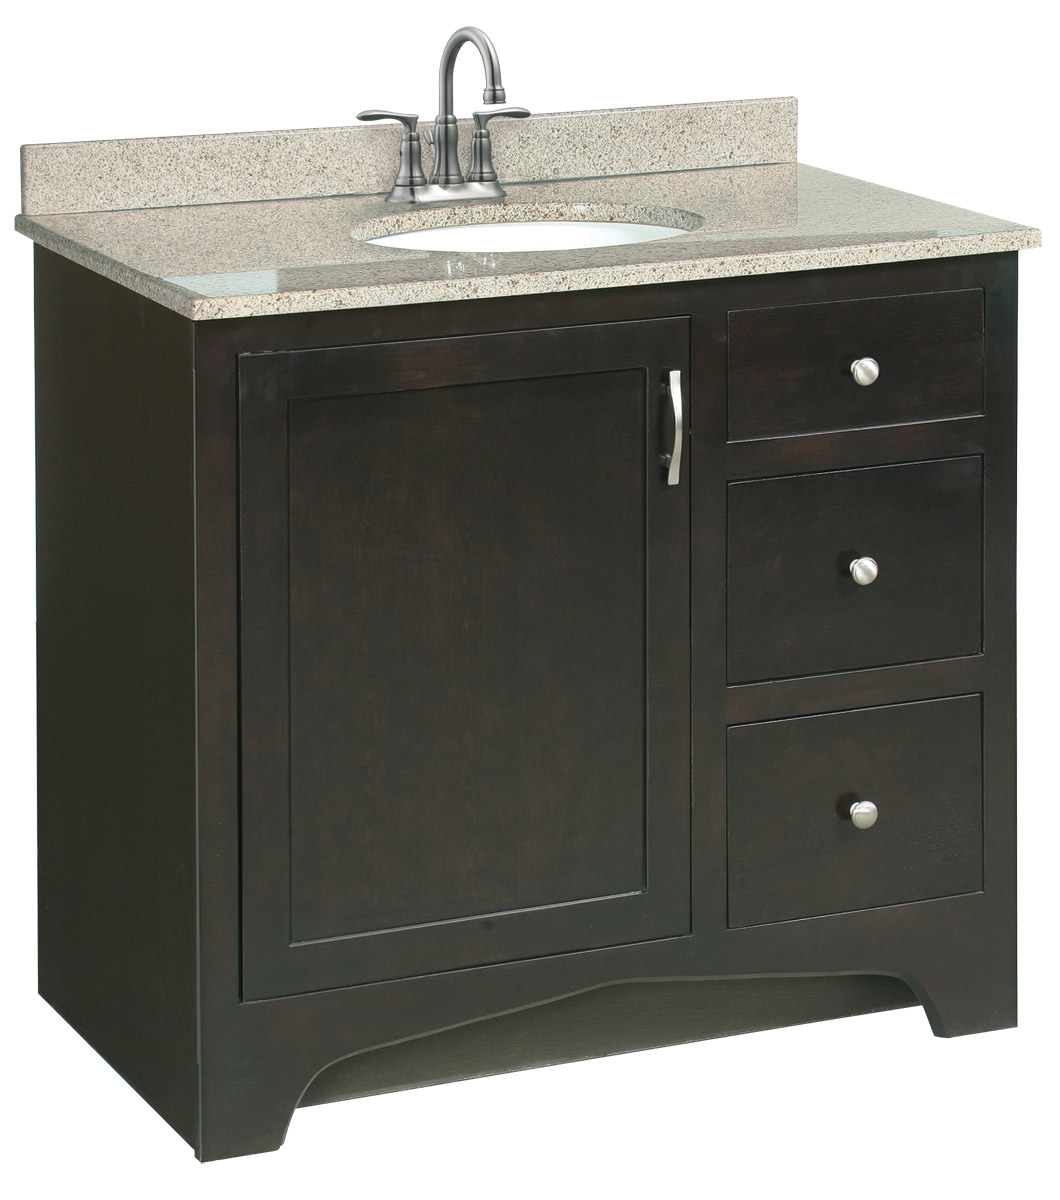 Design House 539619 Ventura Espresso Vanity Cabinet with 1-Door and 2-Drawers 36-Inches by 33.5-Inches